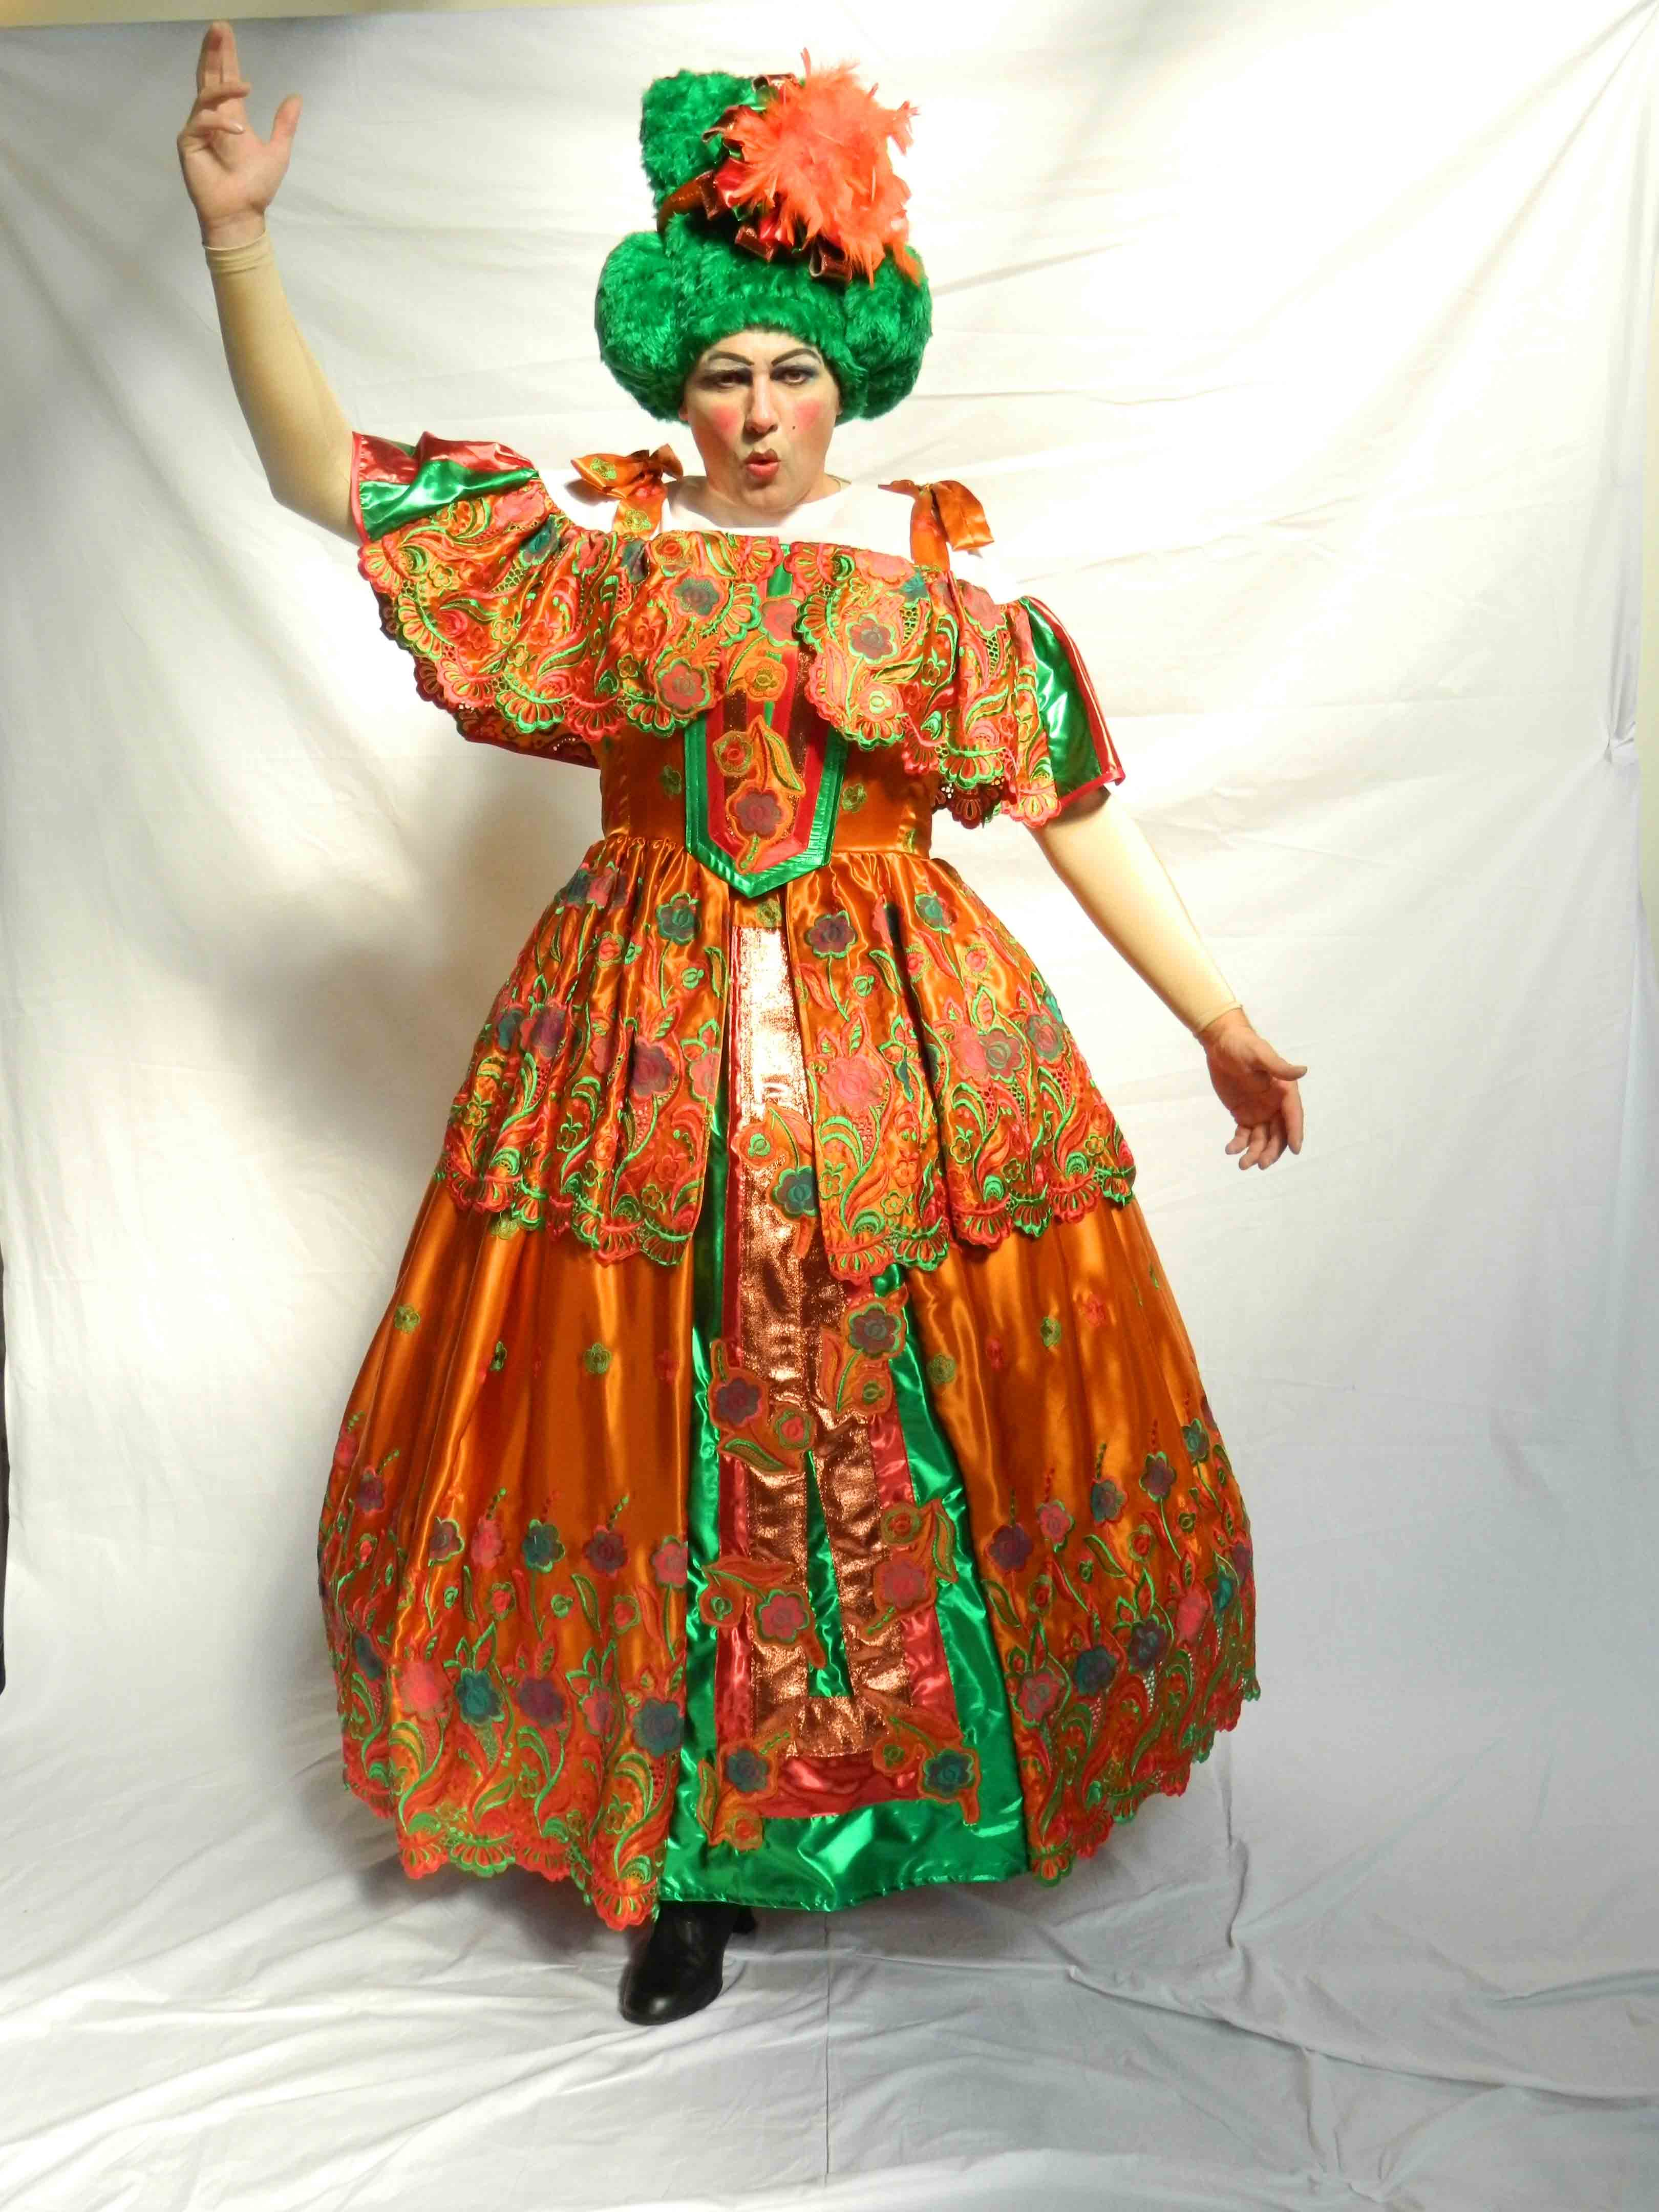 Panto Dame - Orange Green Ballgown